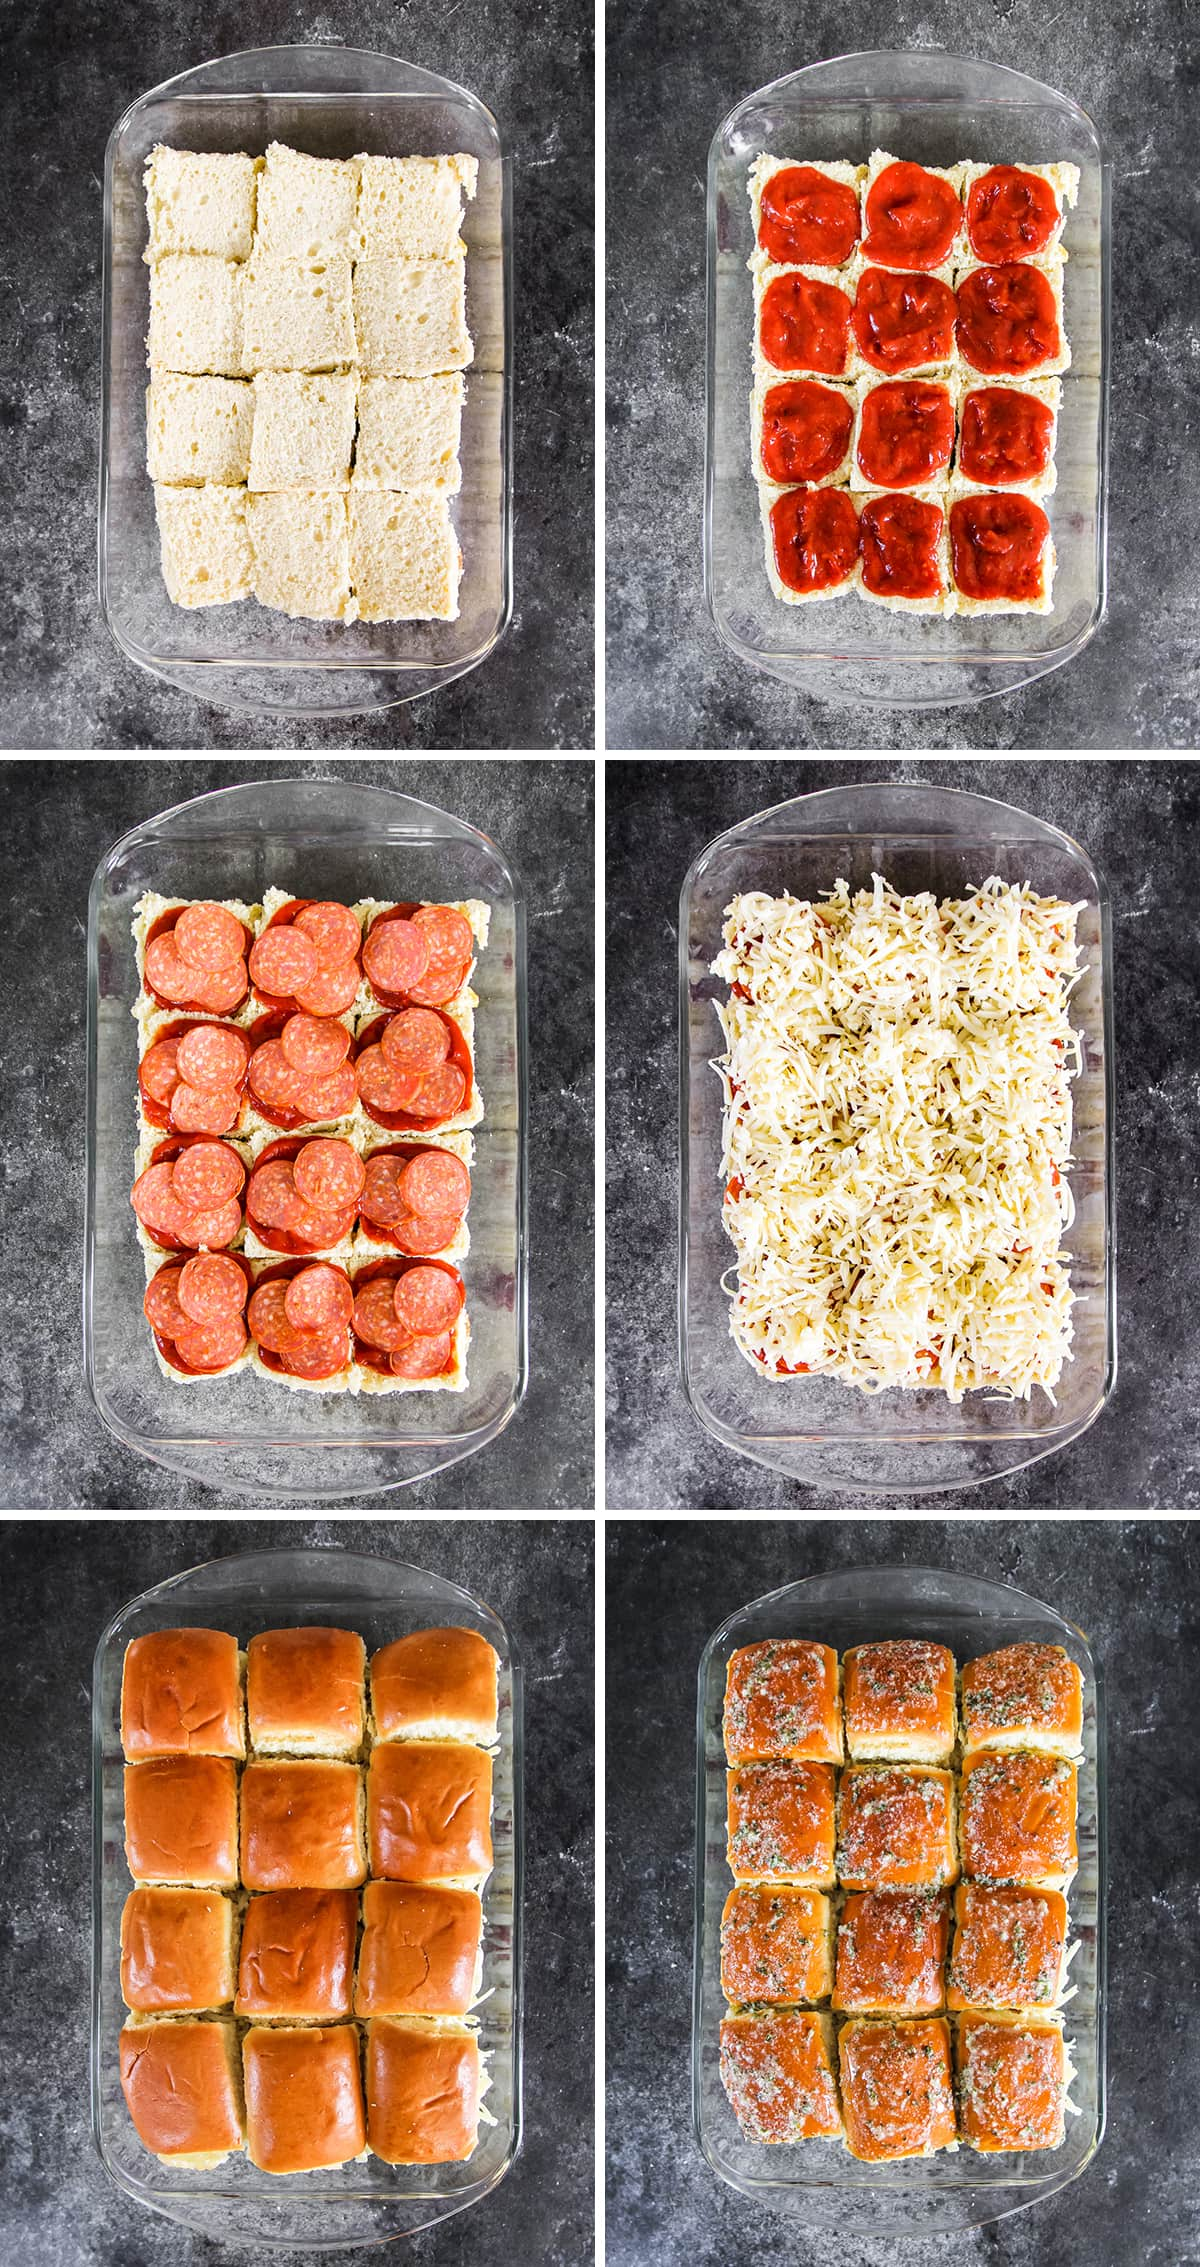 a six picture grid showing how to make the sliders